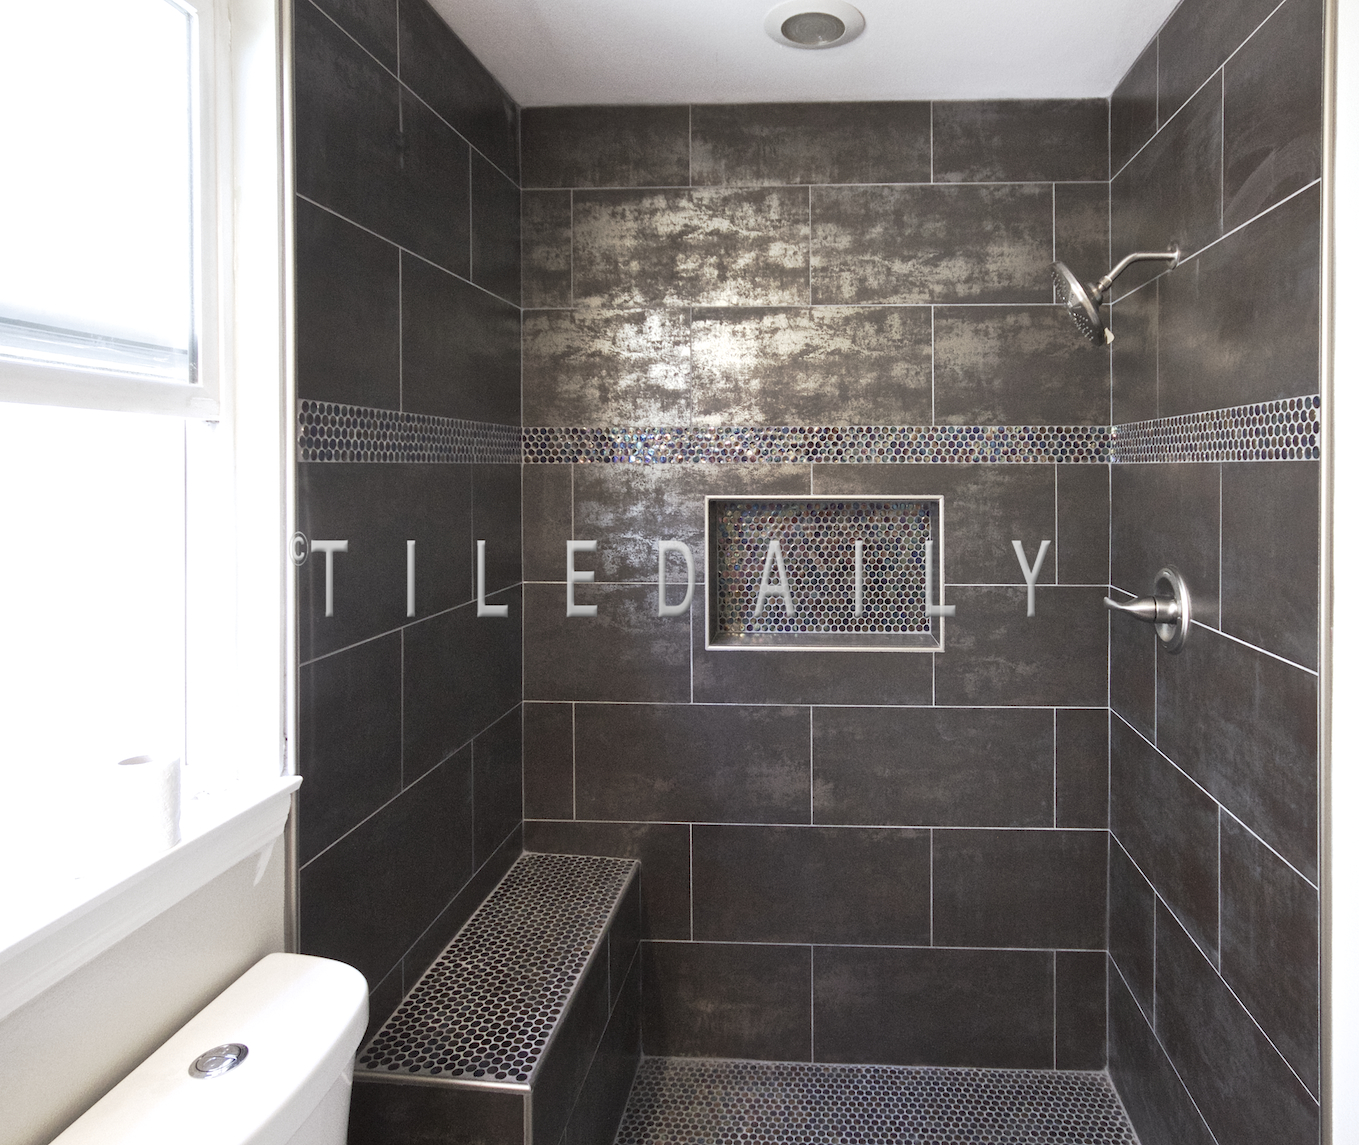 Bathroom Install Metallic Iron Porcelain Tile Tiledaily - Metallic bathroom tiles